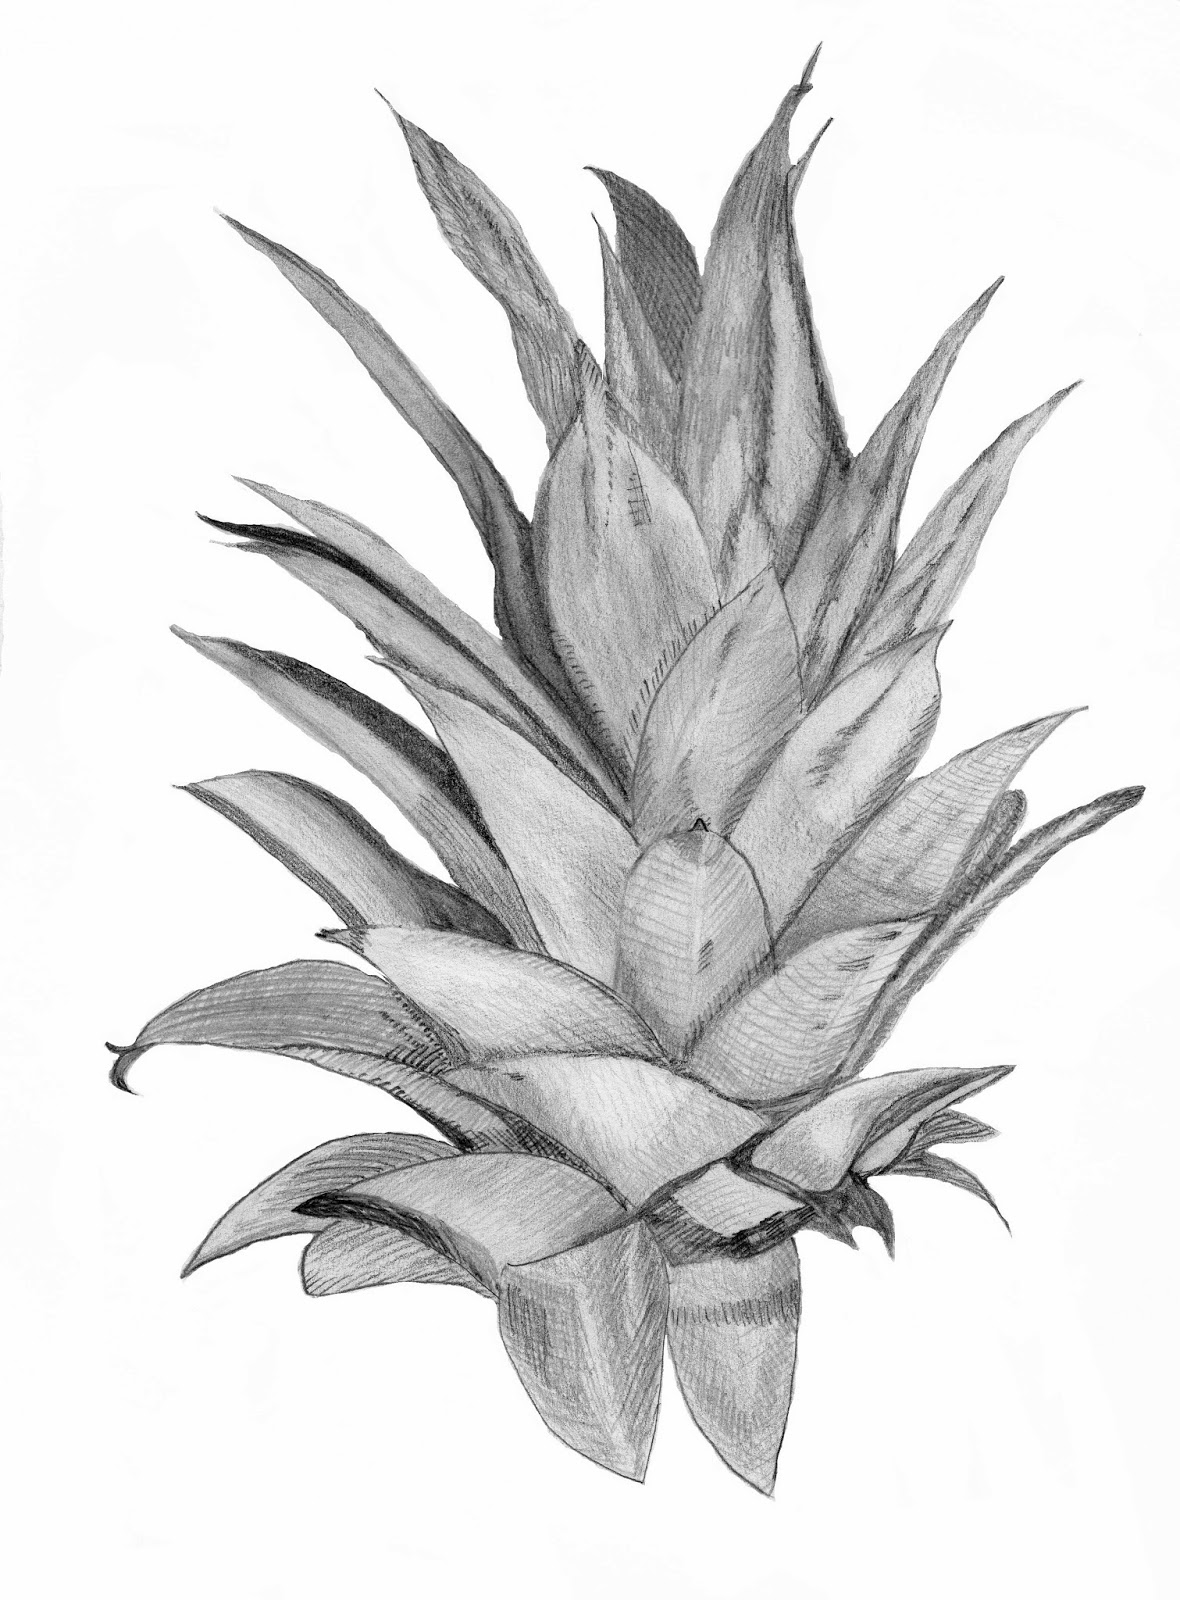 pineapple drawing pineapple black and white free download on clipartmag pineapple drawing